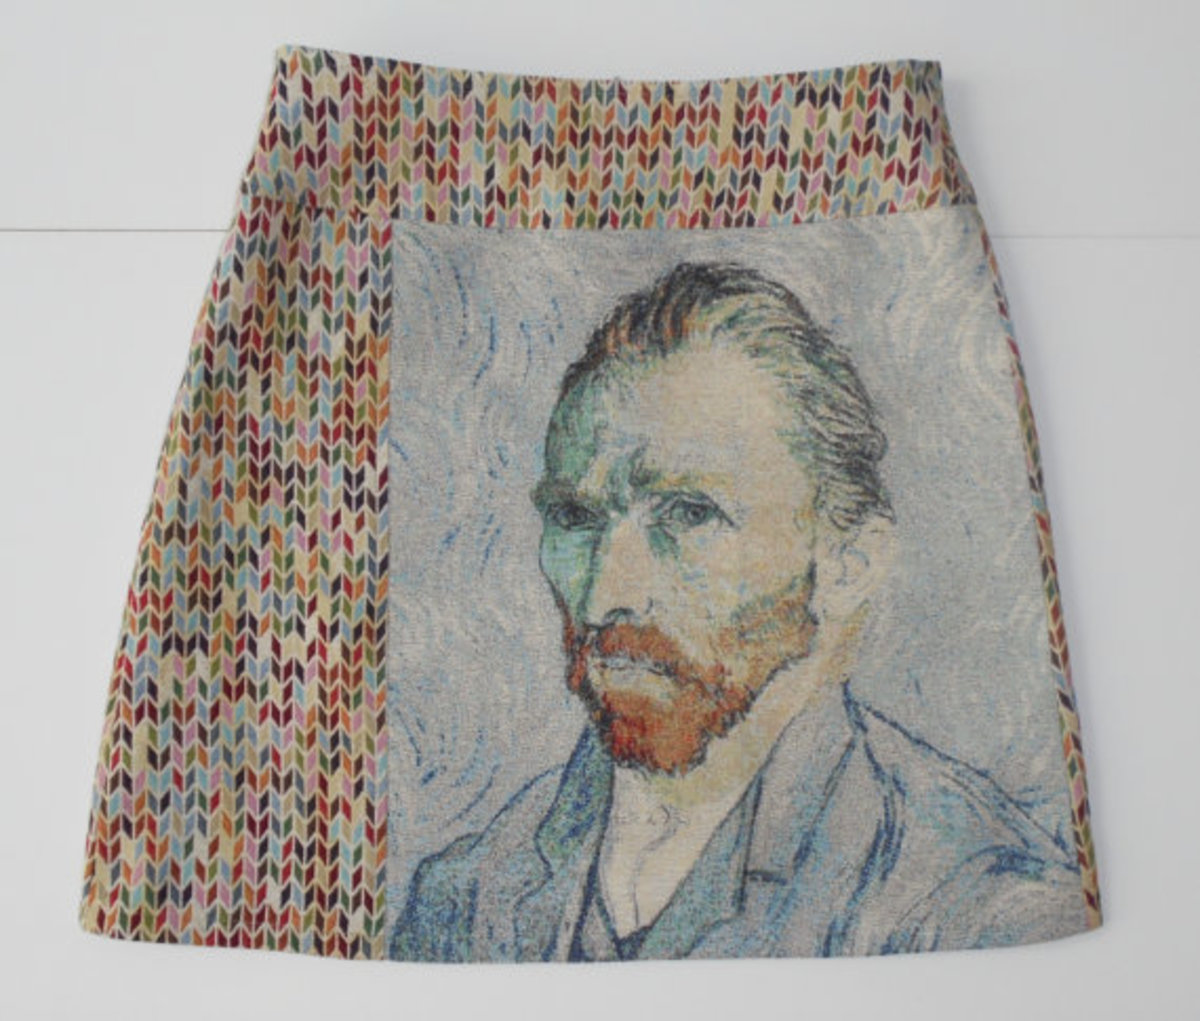 Van Gogh skirt, $80.87, available on Etsy.